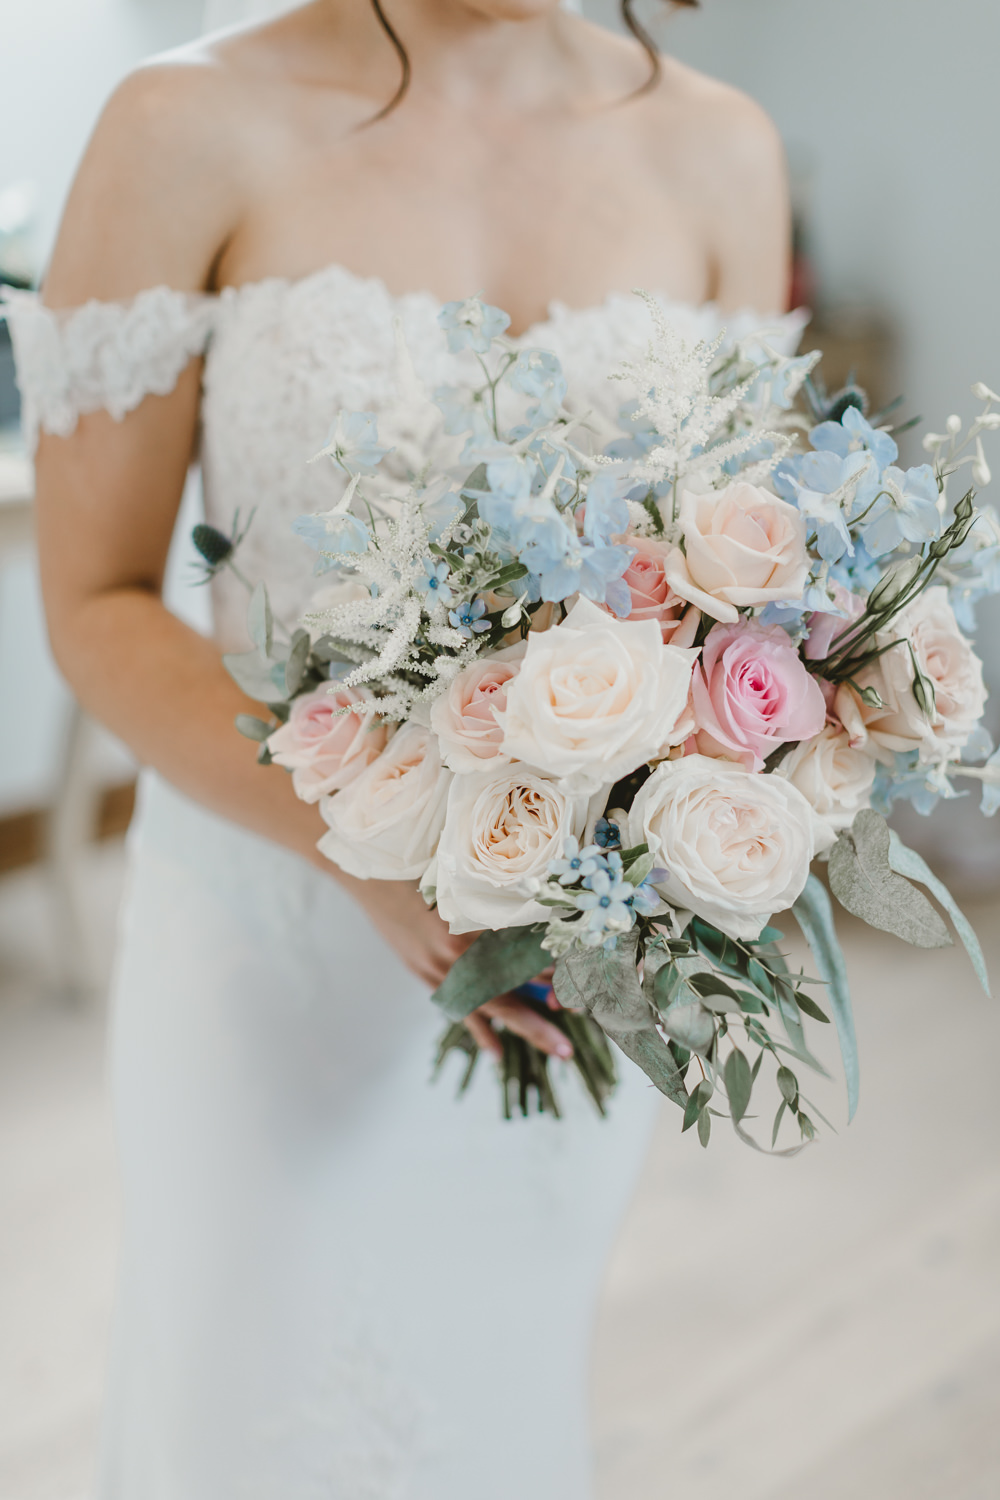 Bouquet Flowers Bride Bridal Pink Blue Rose Astilbe GG's Yard Wedding Amy Lou Photography